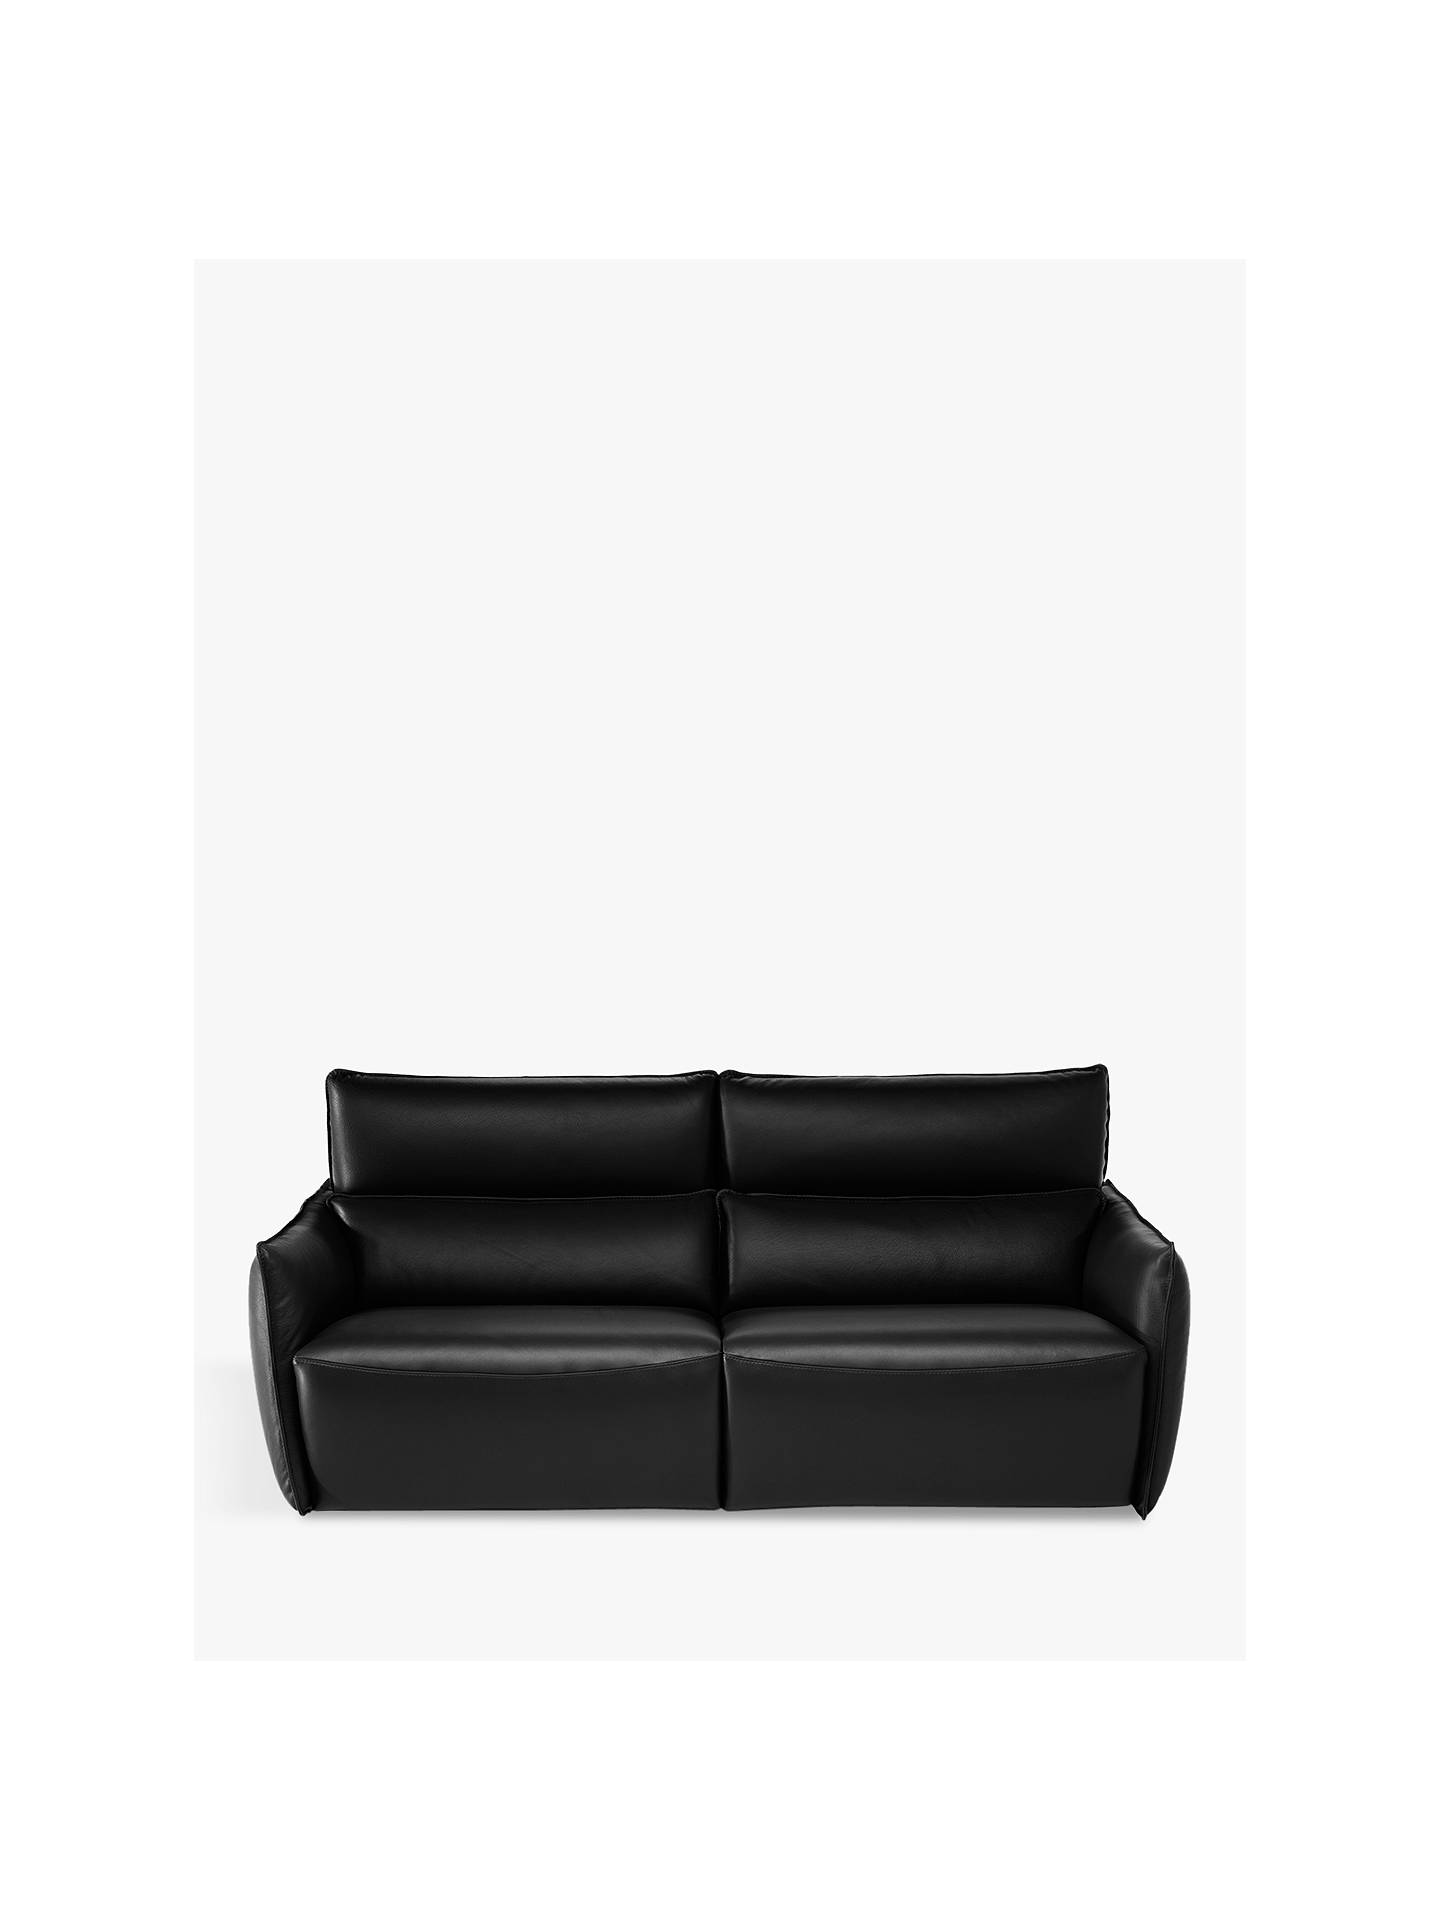 ff42c0b495f2 Buy Natuzzi Stupore 446 Leather Small 2 Seater Sofa with Power Motion,  Dream Black Online ...